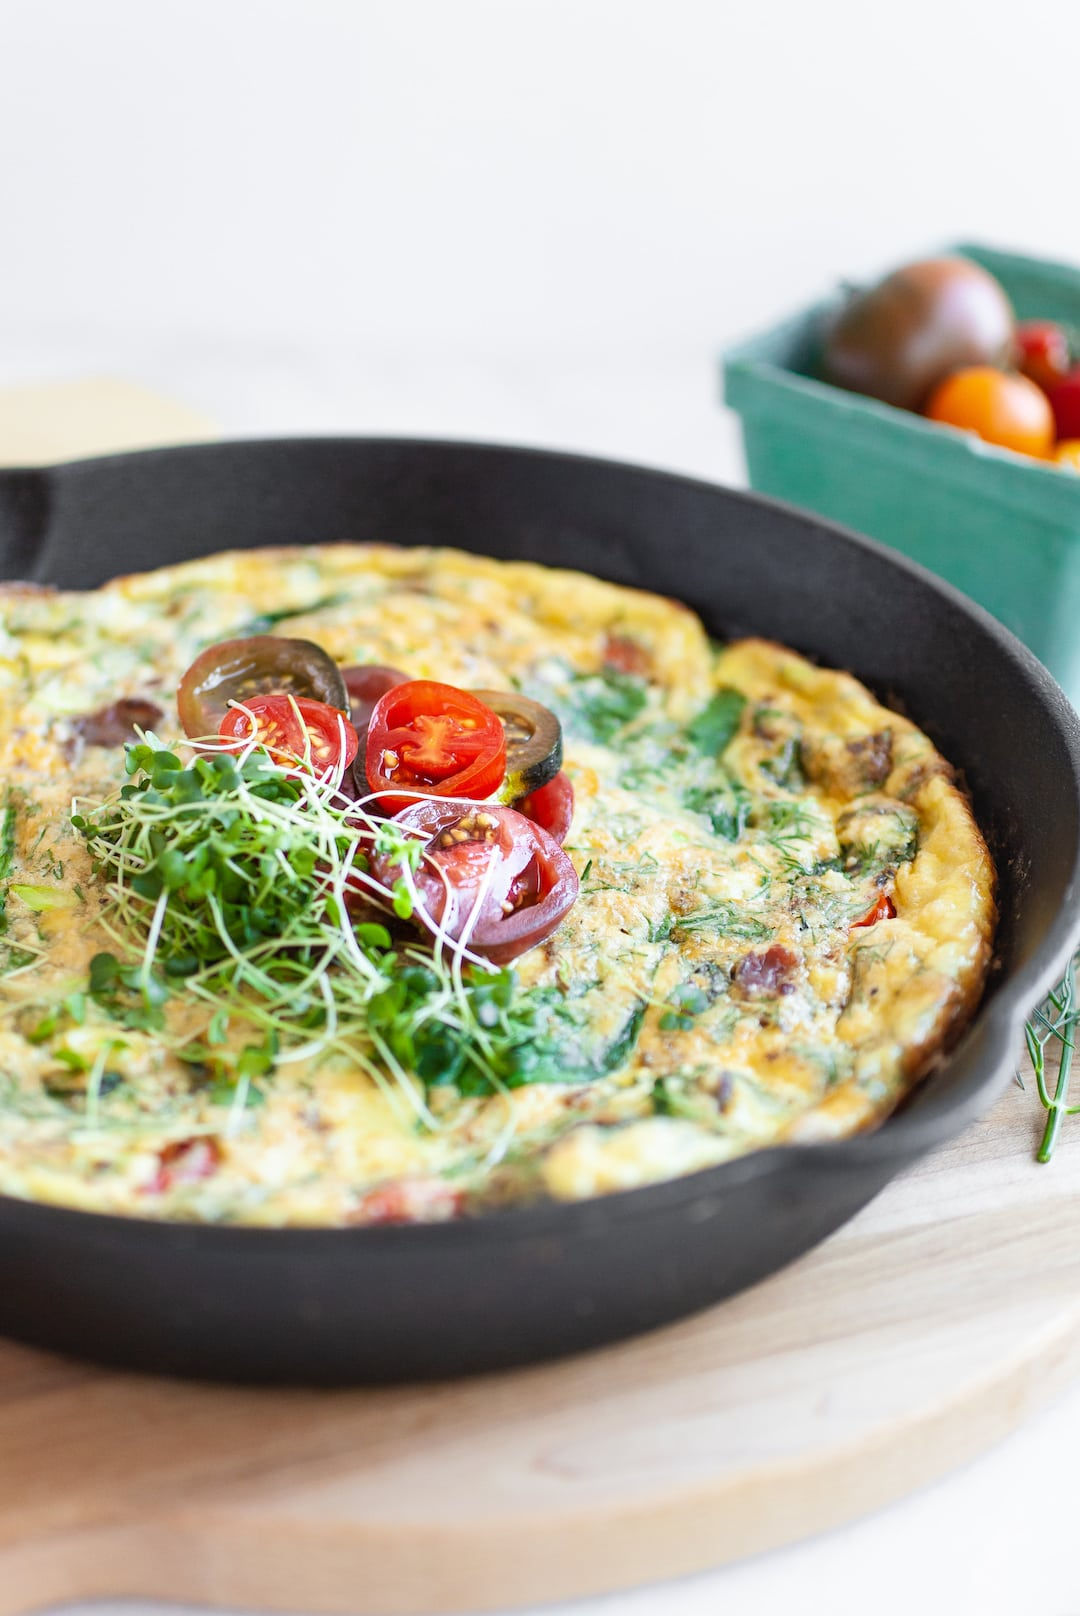 Side view of baked dairy free frittata in a skillet